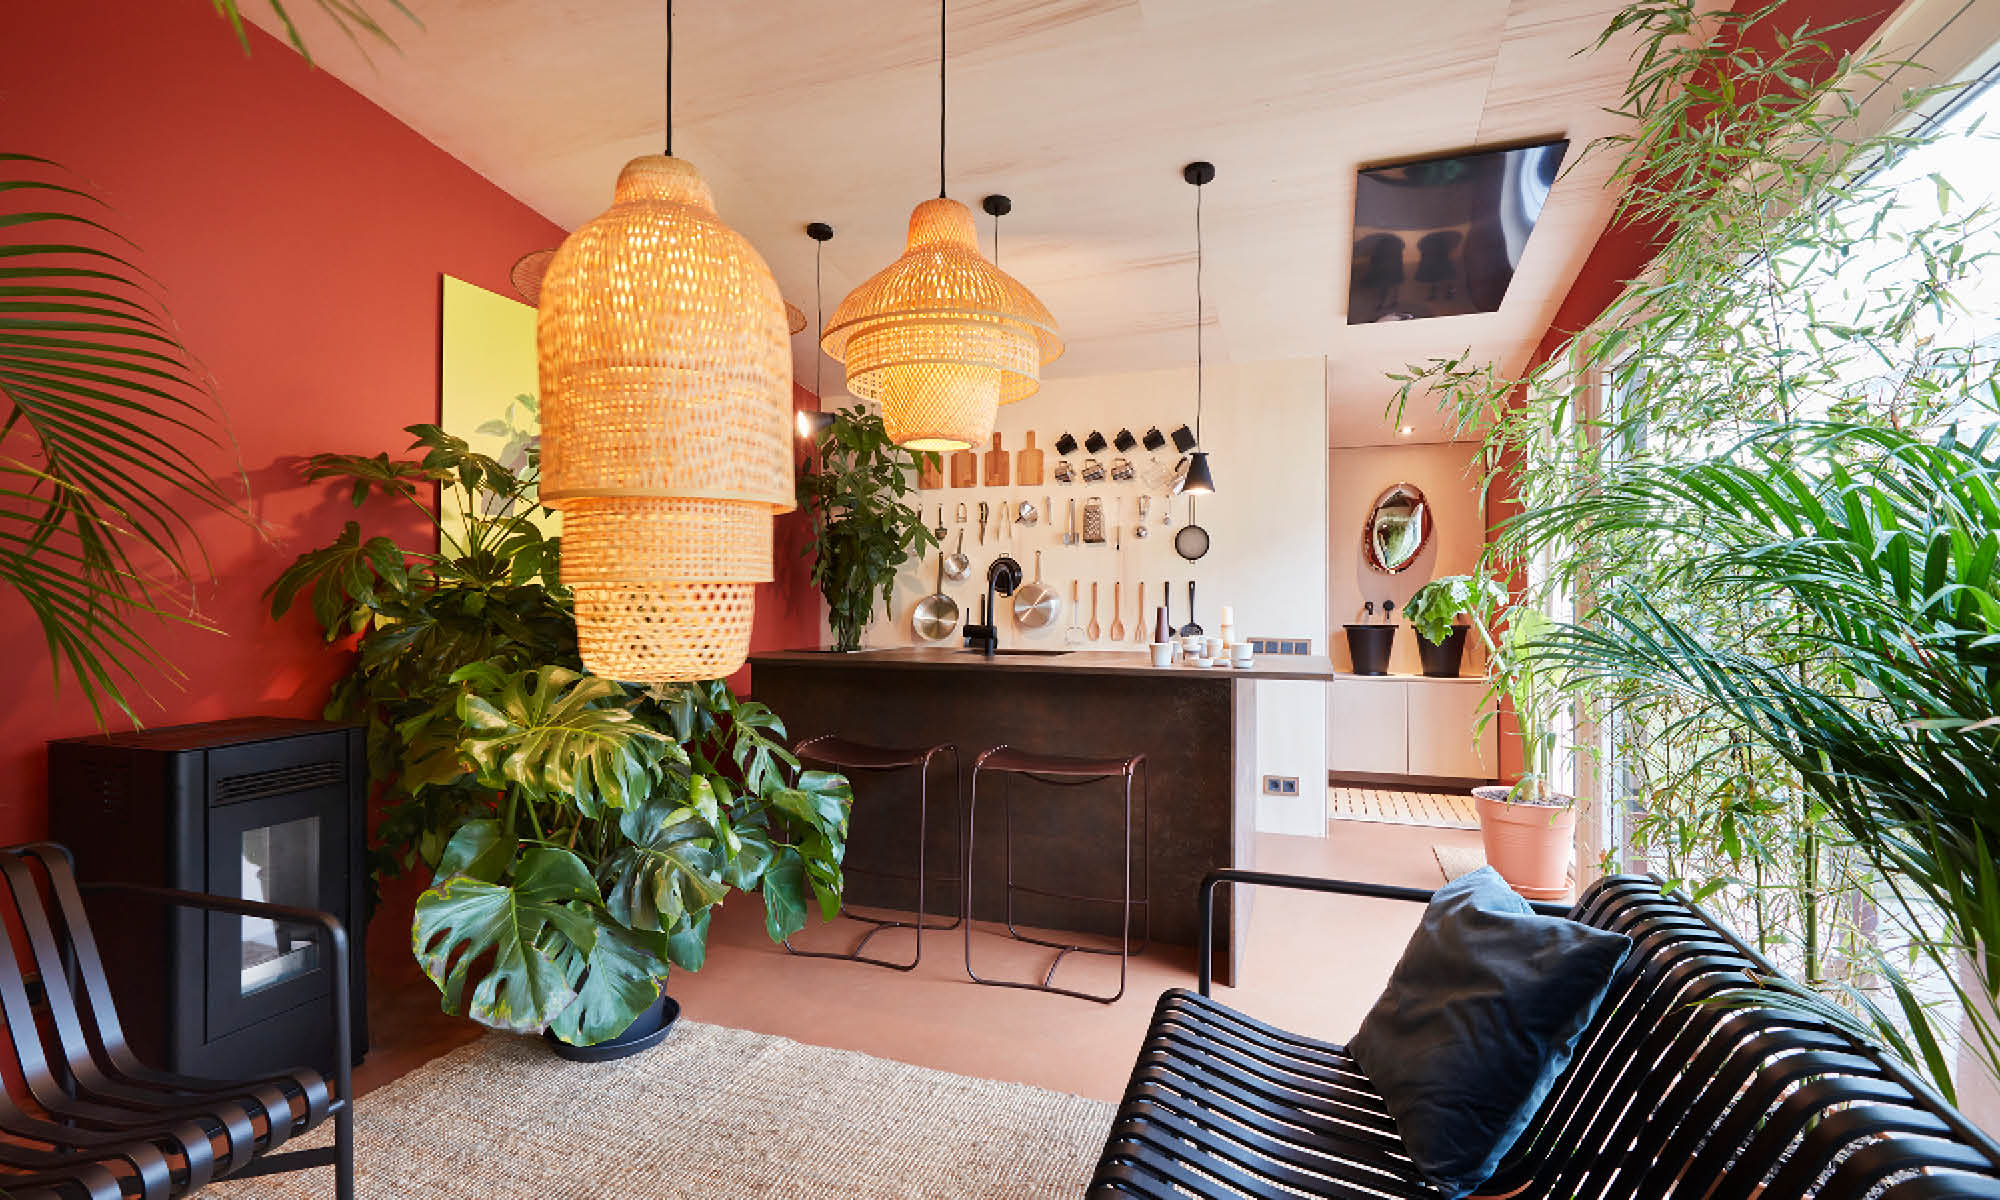 The open kitchen is decorated with many plants and other elements in bohoo style.